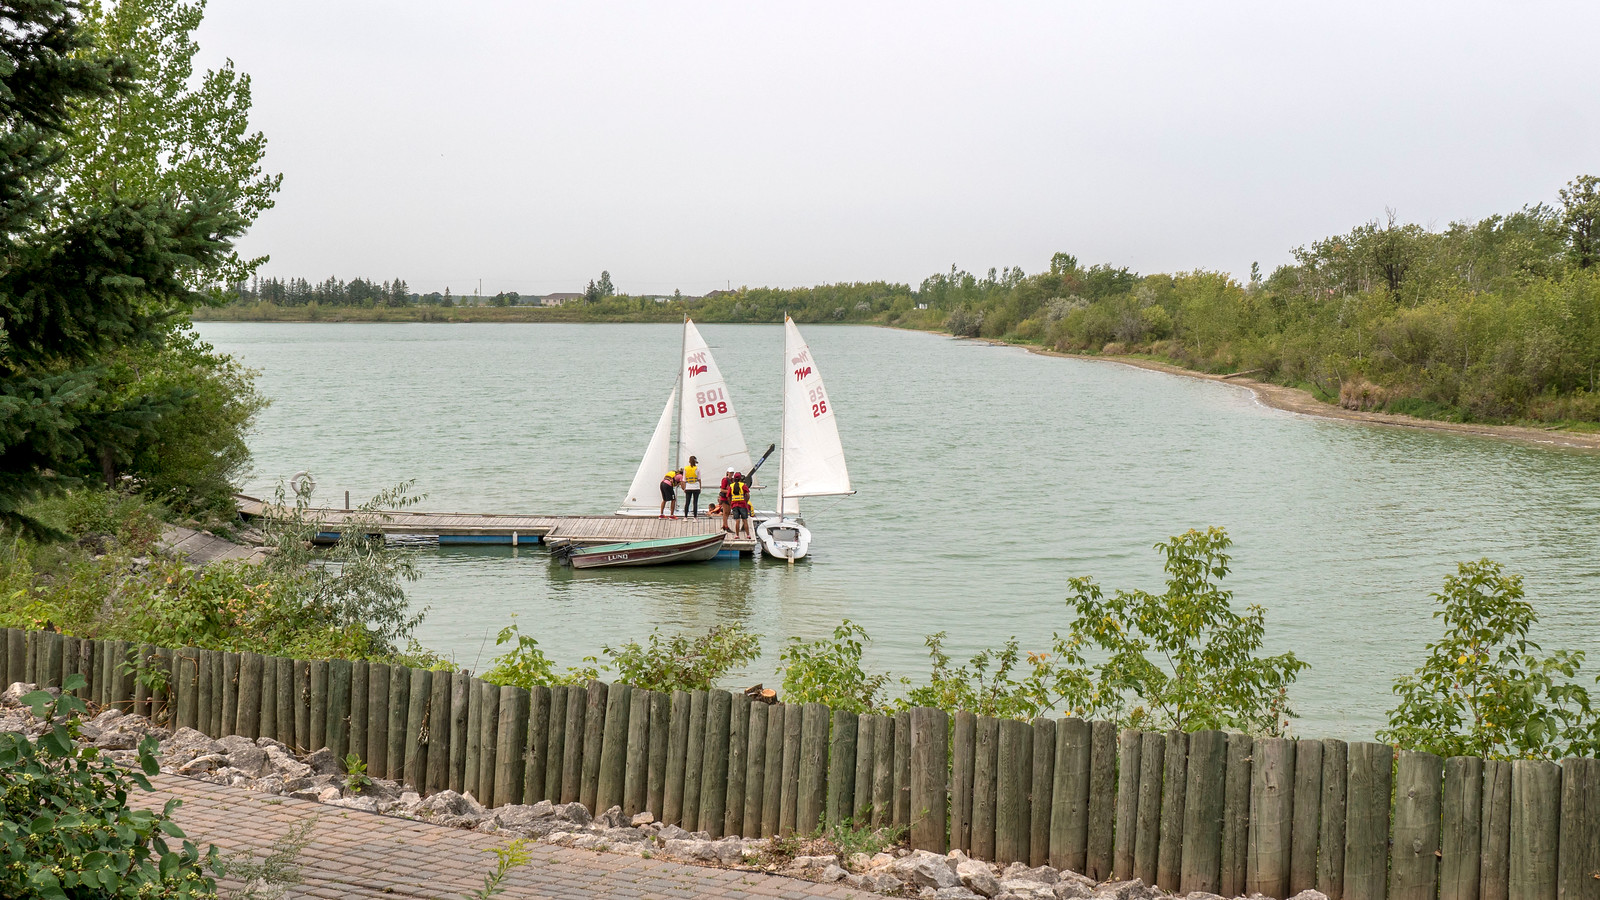 Fortwhyte Alive Lakes, Winnipeg. Things to Do in Winnipeg: A Couples Getaway Guide